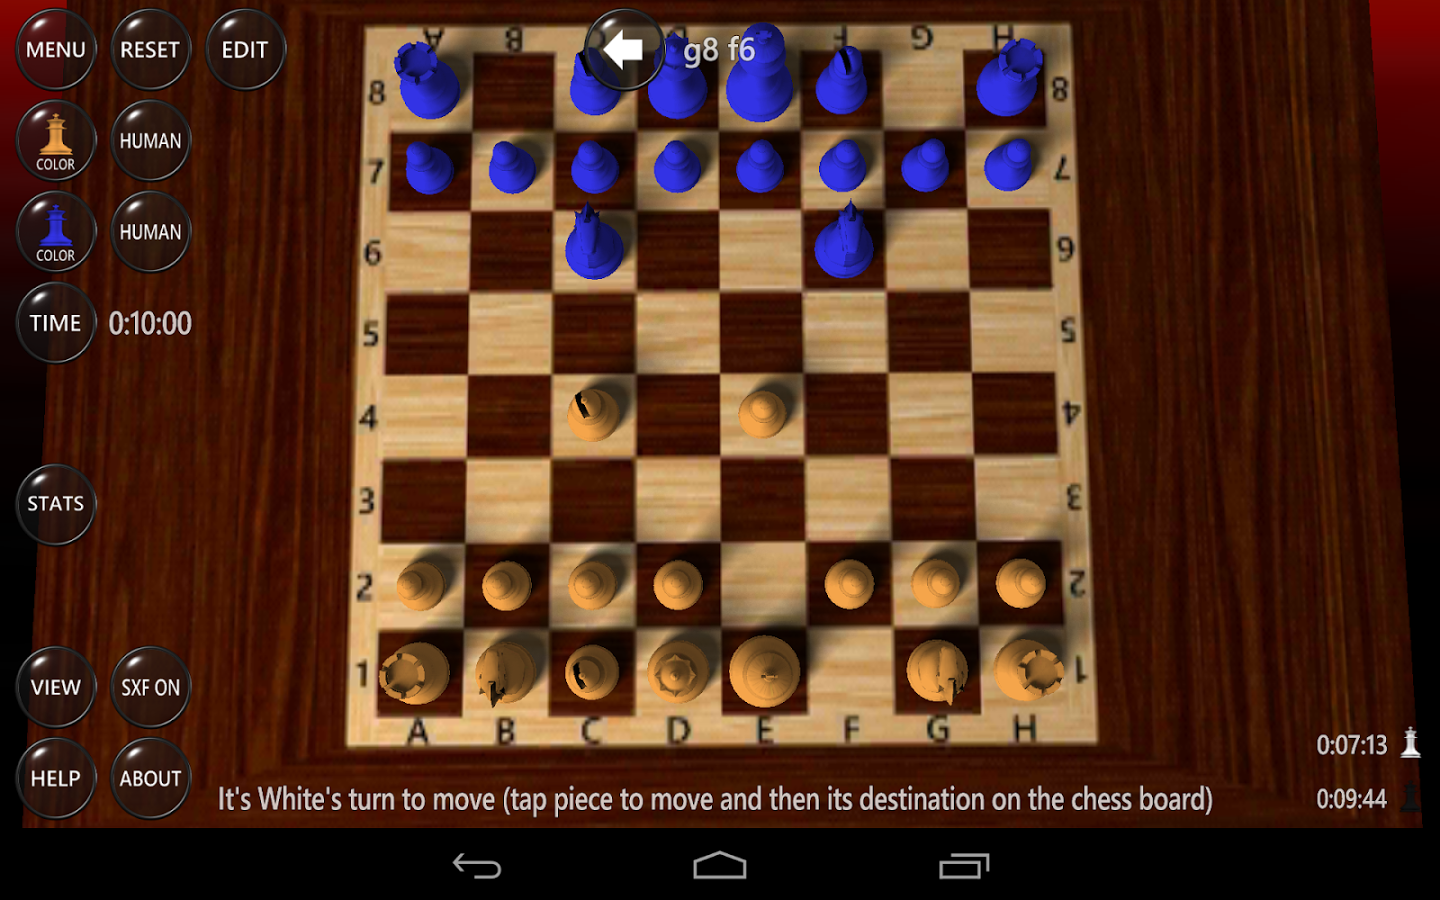 Download 3D Chess Game For Android | 3D Chess Game APK | Appvn Android